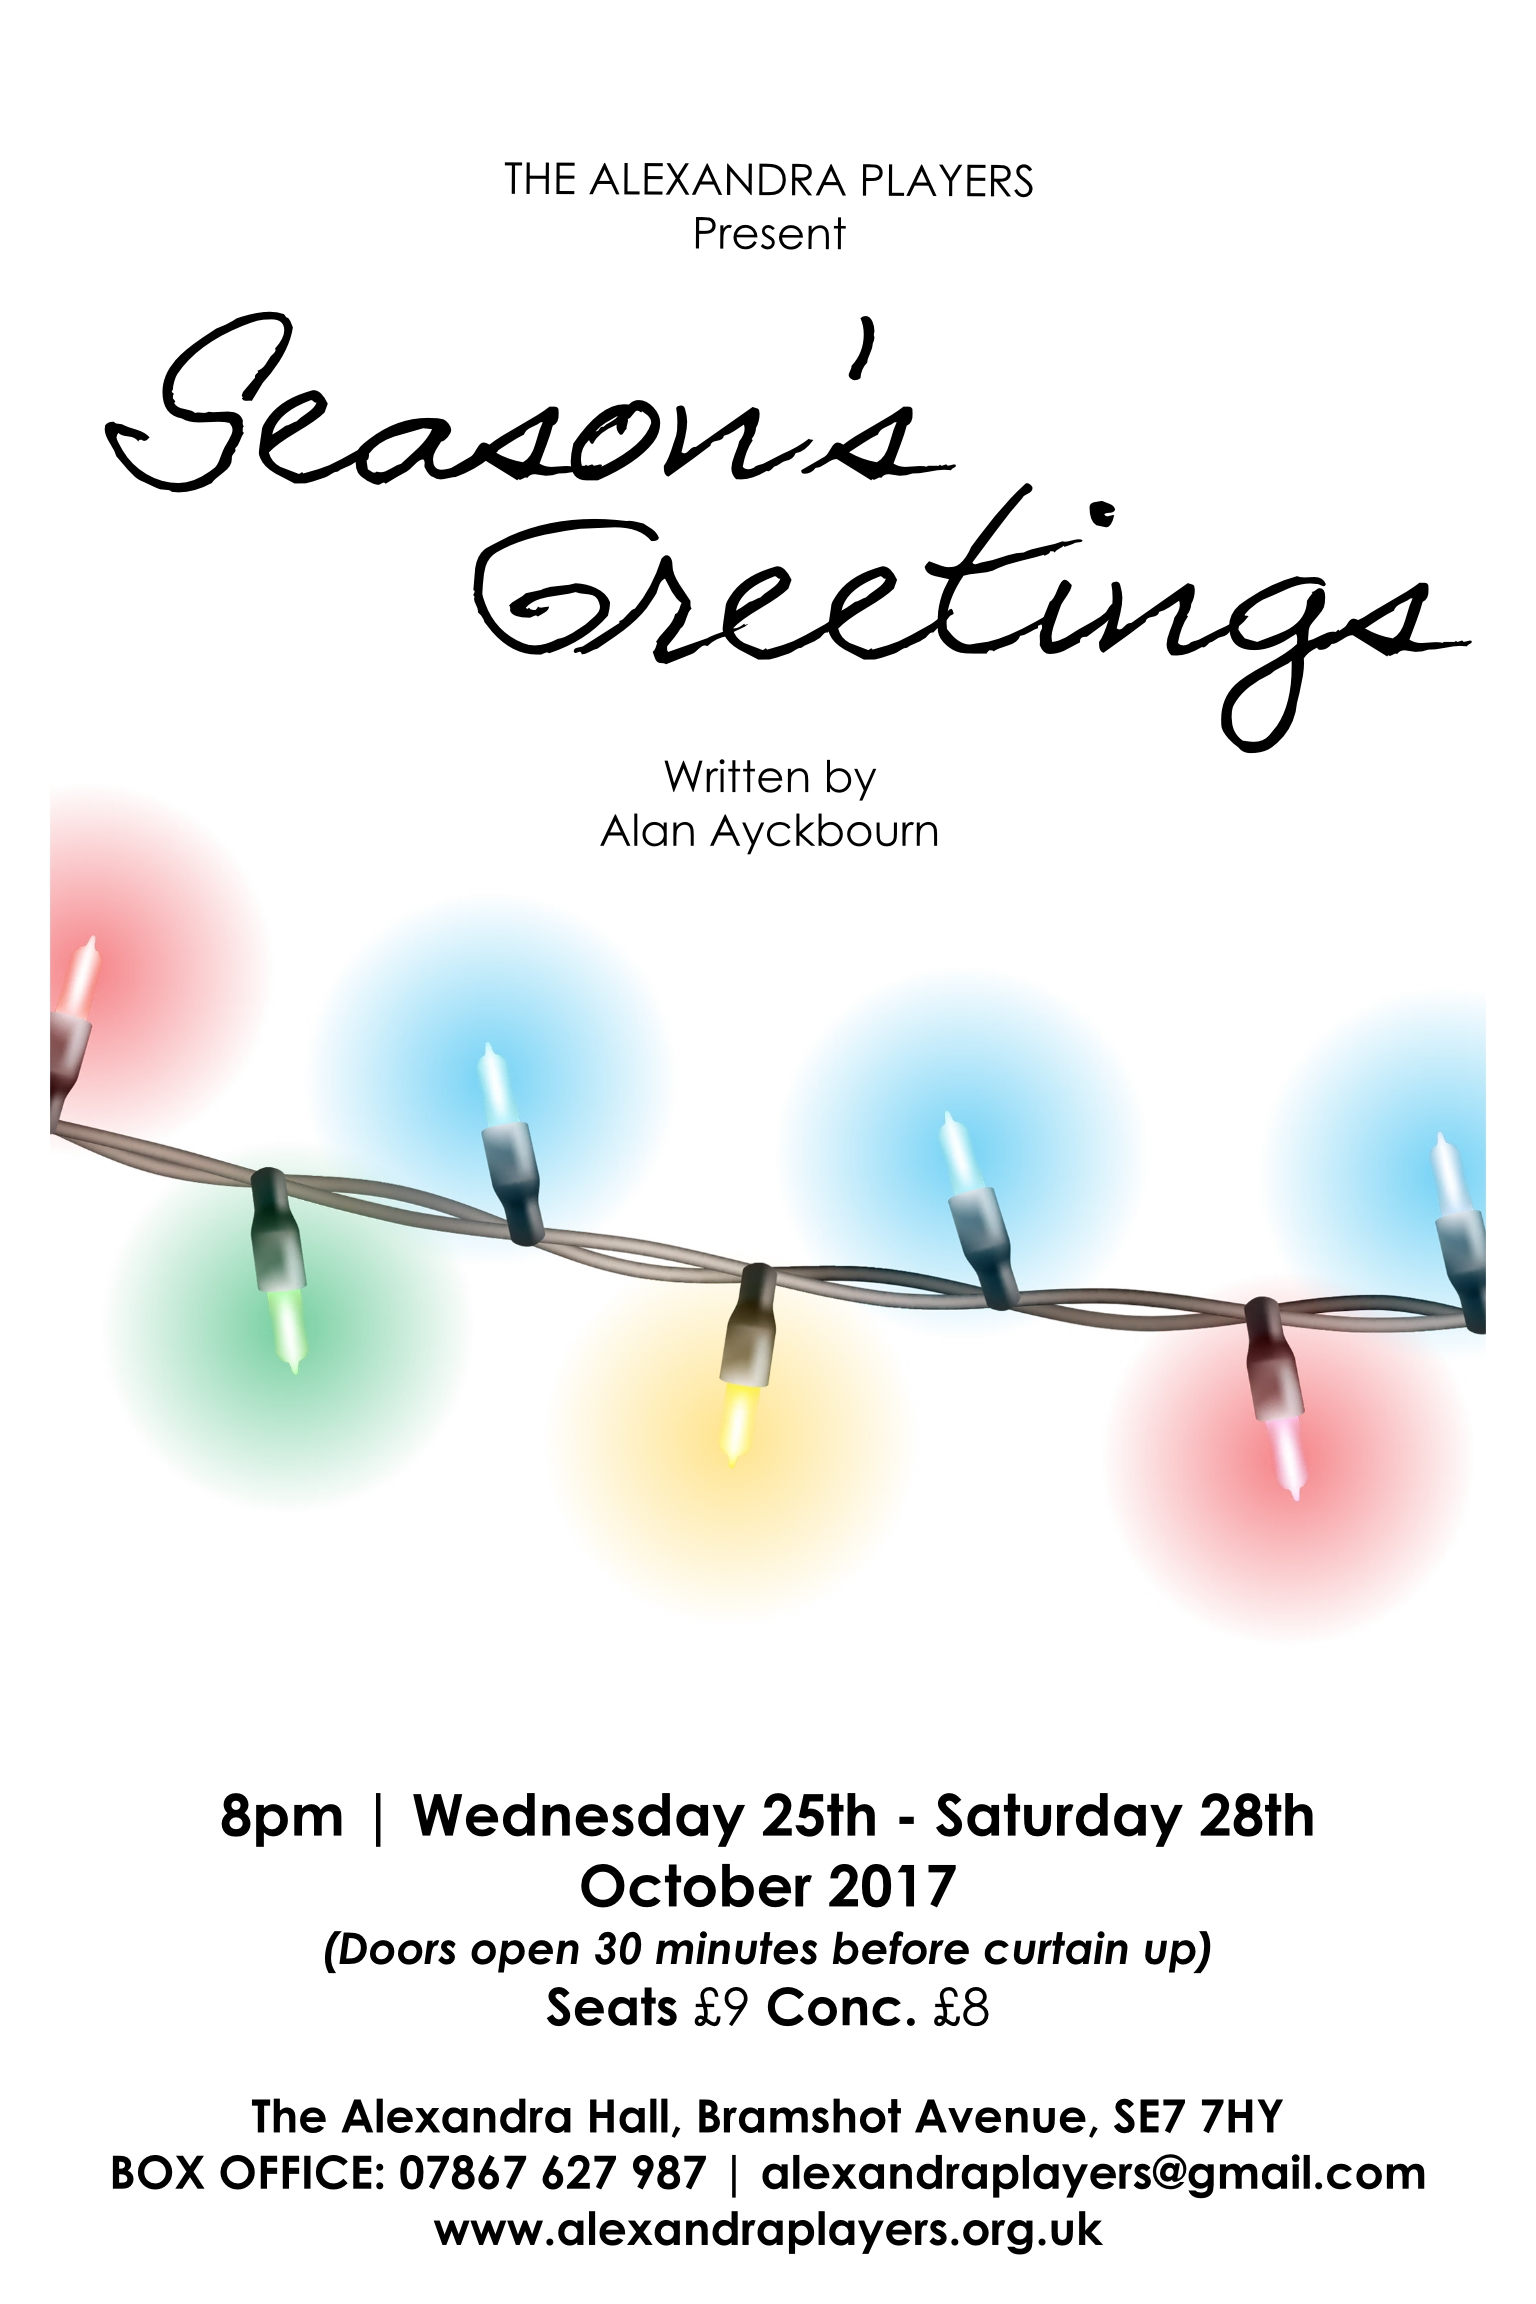 The alexandra players bring sir alan ayckbourns seasons greetings players return to the alexandra hall on bramshot avenue at the end of this month with a production of seasons greetings written by sir alan ayckbourn m4hsunfo